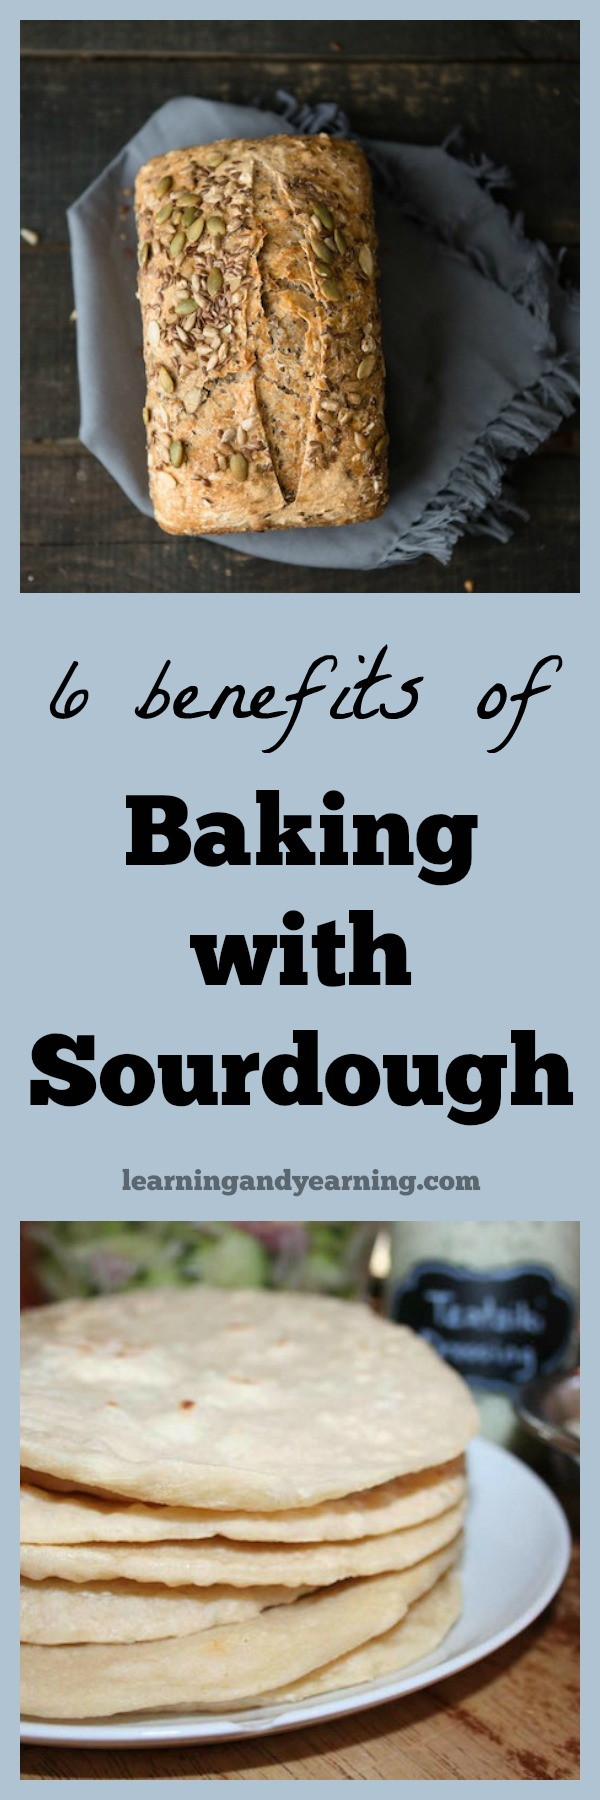 Sourdough...chances are you've either tried sourdough bread yourself, or you know someone who bakes with it. But are you familiar with the benefits of baking with sourdough? Sourdough recipes are more digestible, healthier and much less expensive than their commercial yeast counterparts.